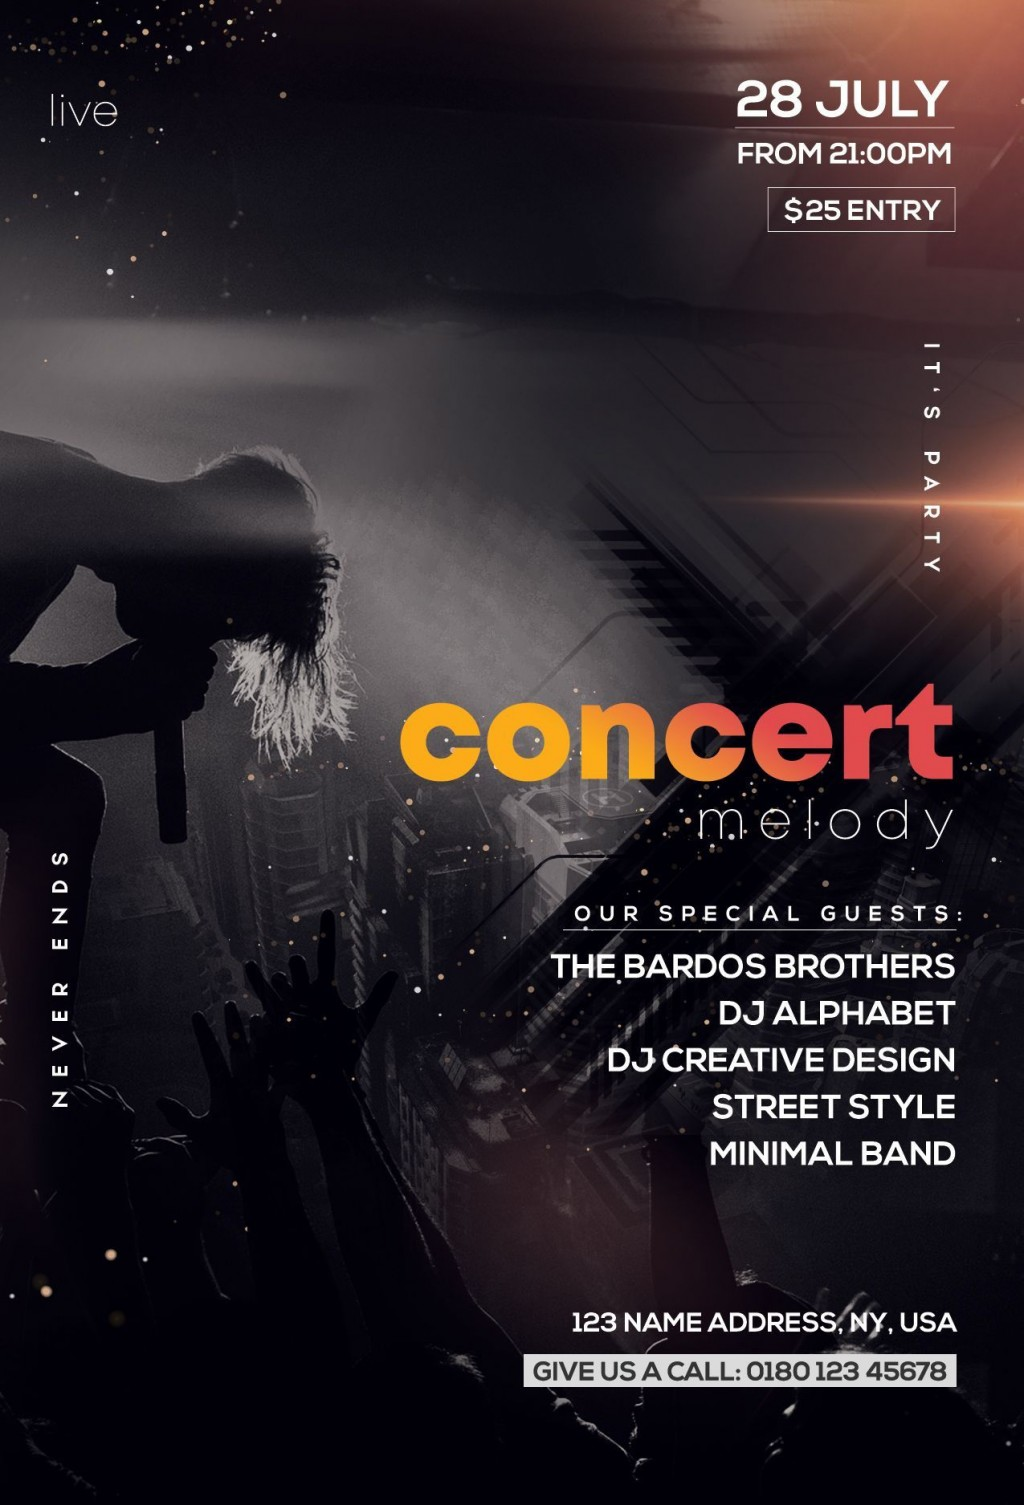 003 Exceptional Free Concert Poster Template Concept  Word Classical MusicLarge